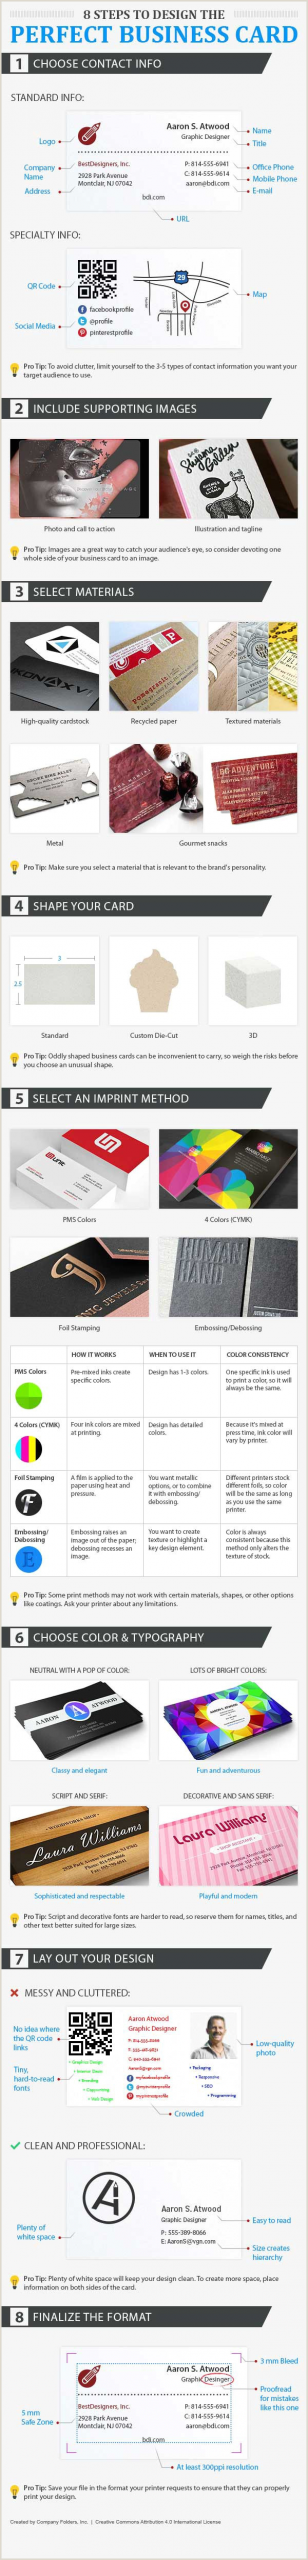 Design Principls For Best Business Cards 5 Top Tips For Creating Business Card Designs